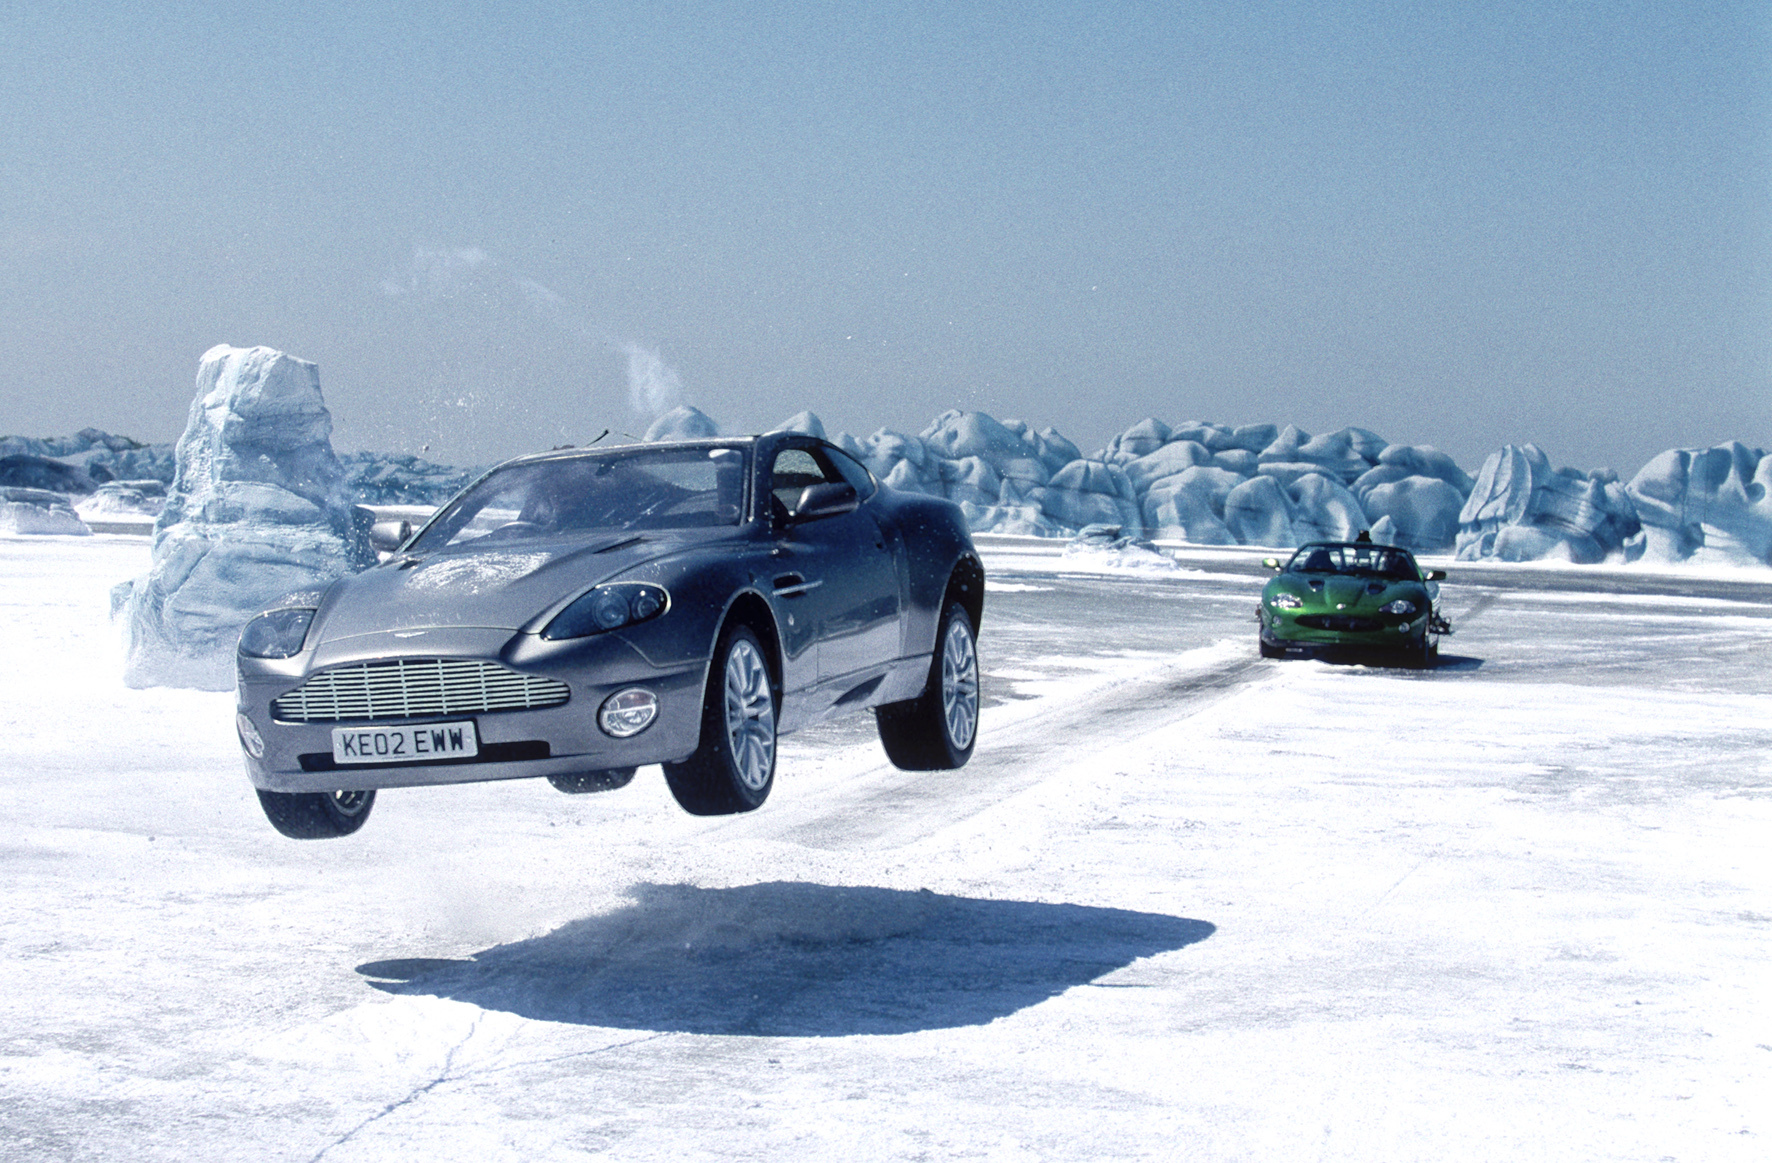 image - die another day (promo) - ice chase | james bond wiki